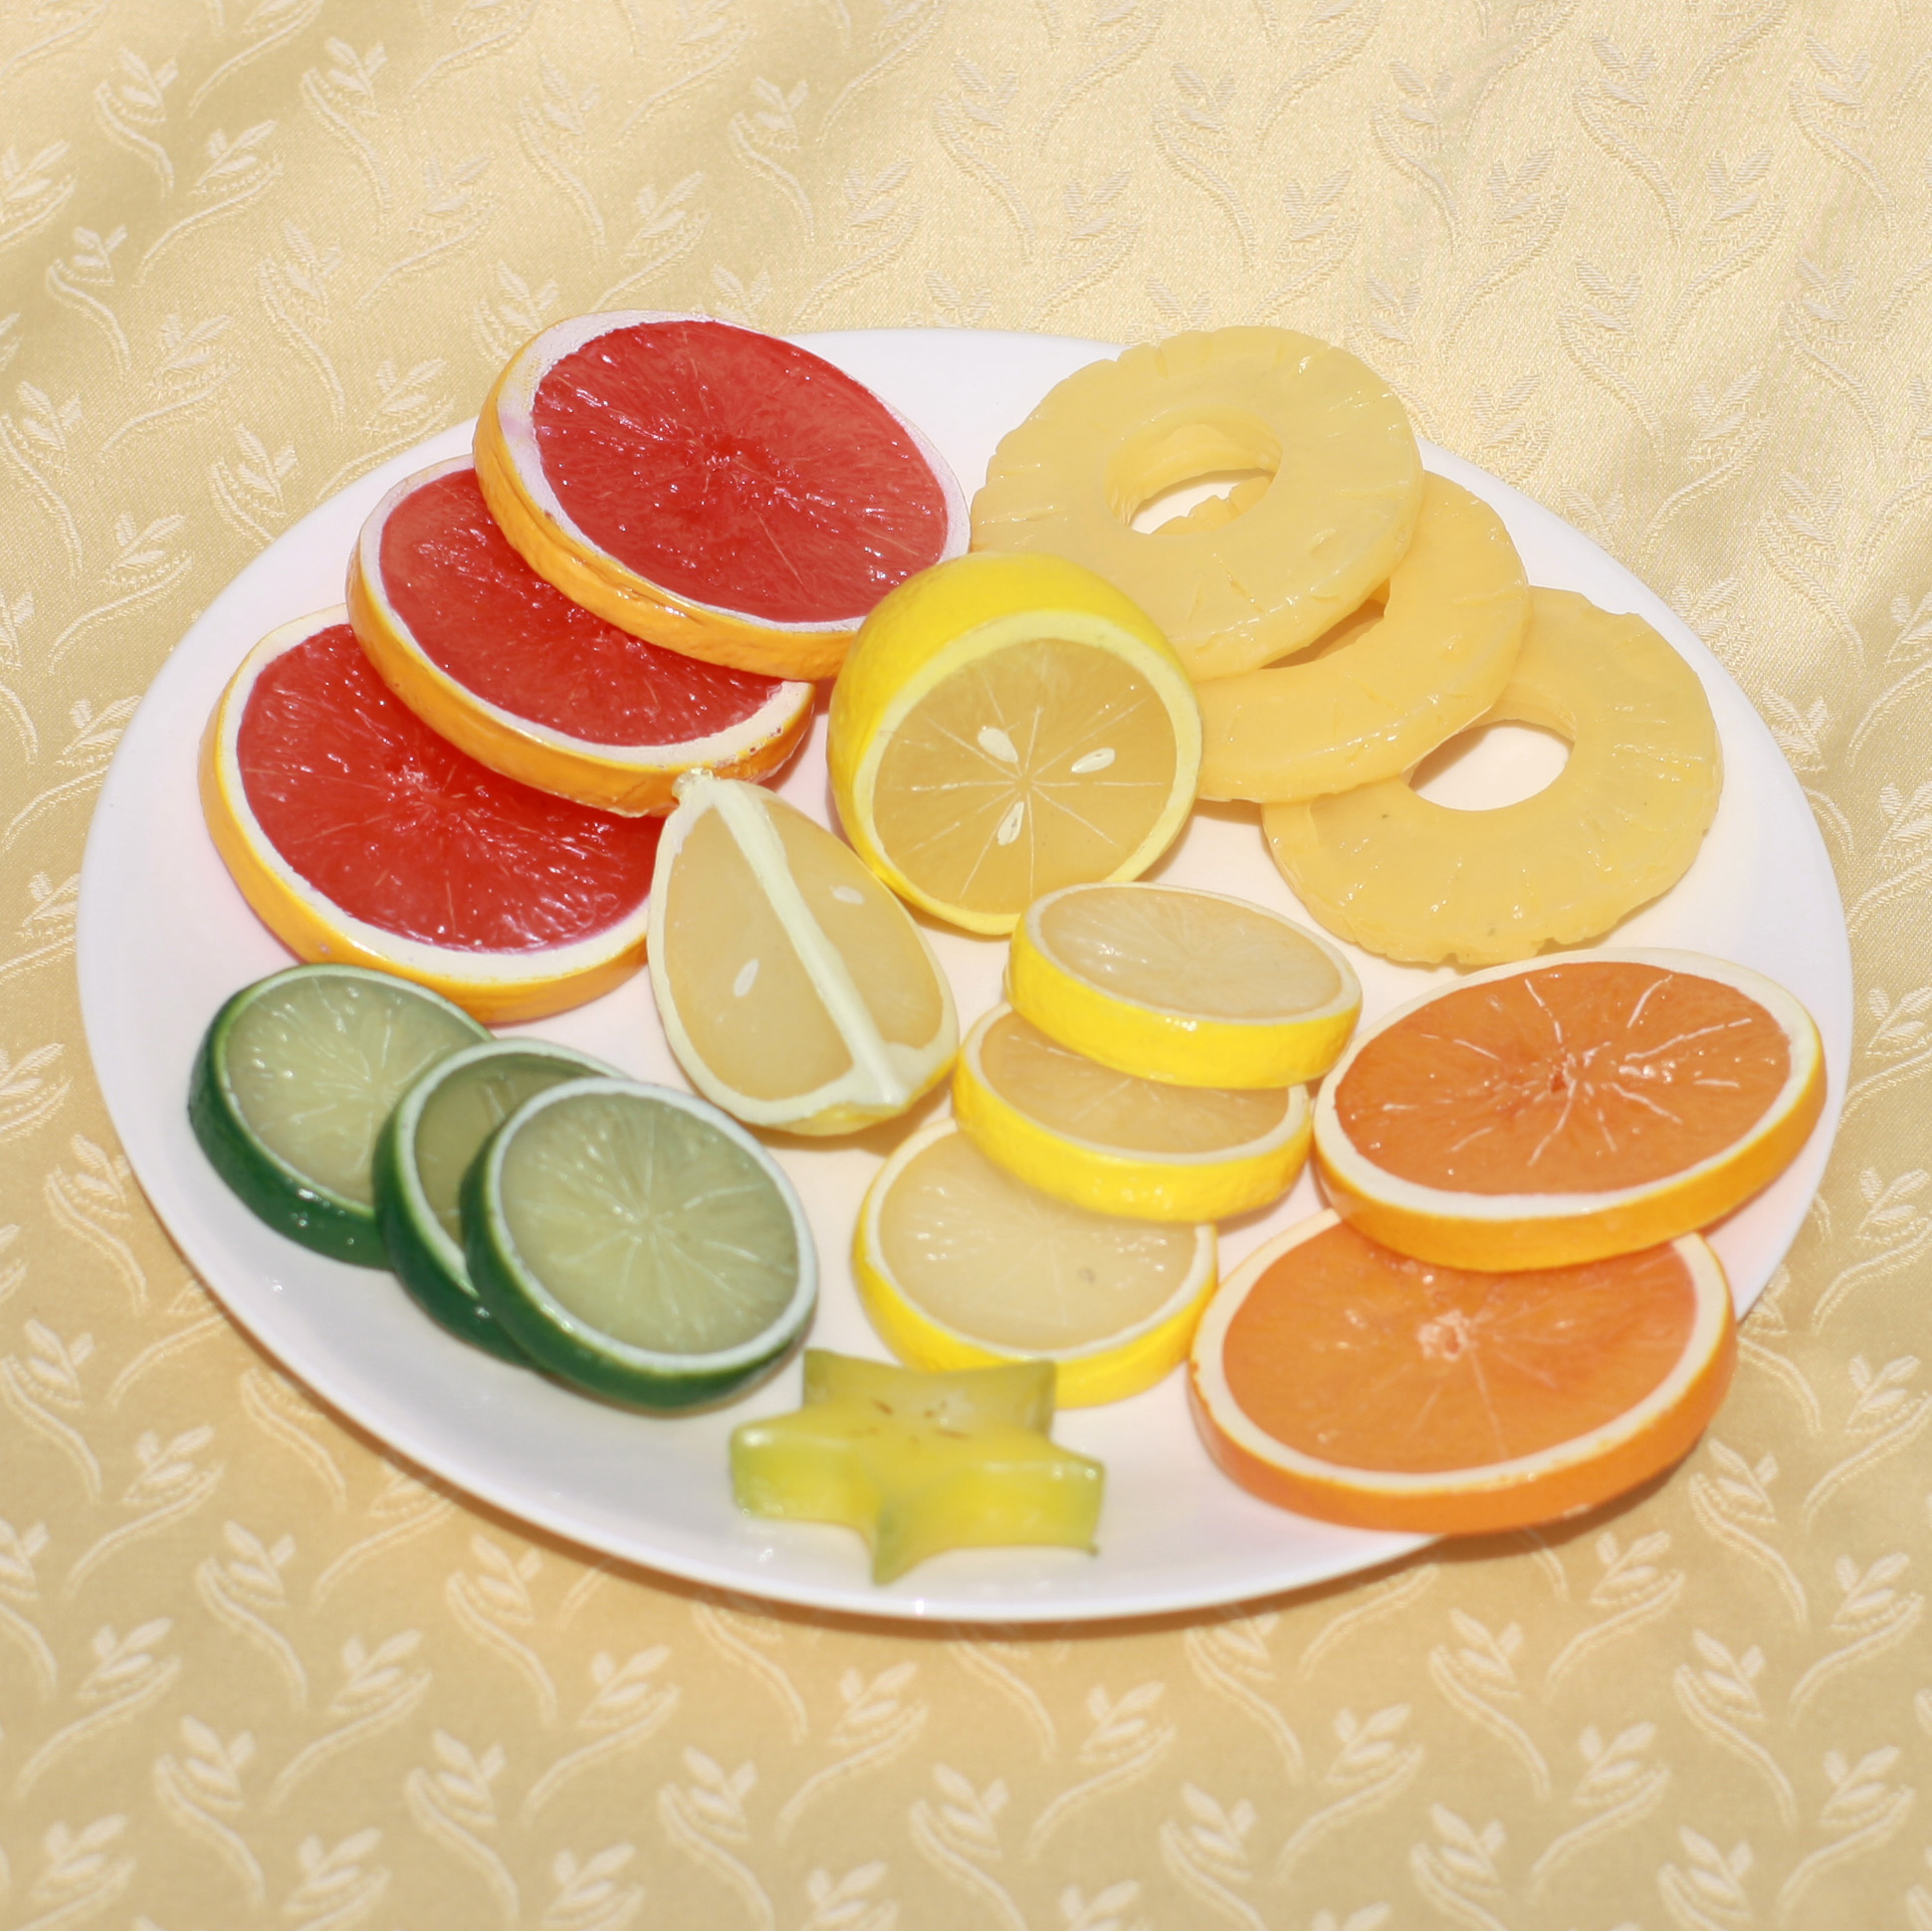 Artificial Fruit Slices & Wedges